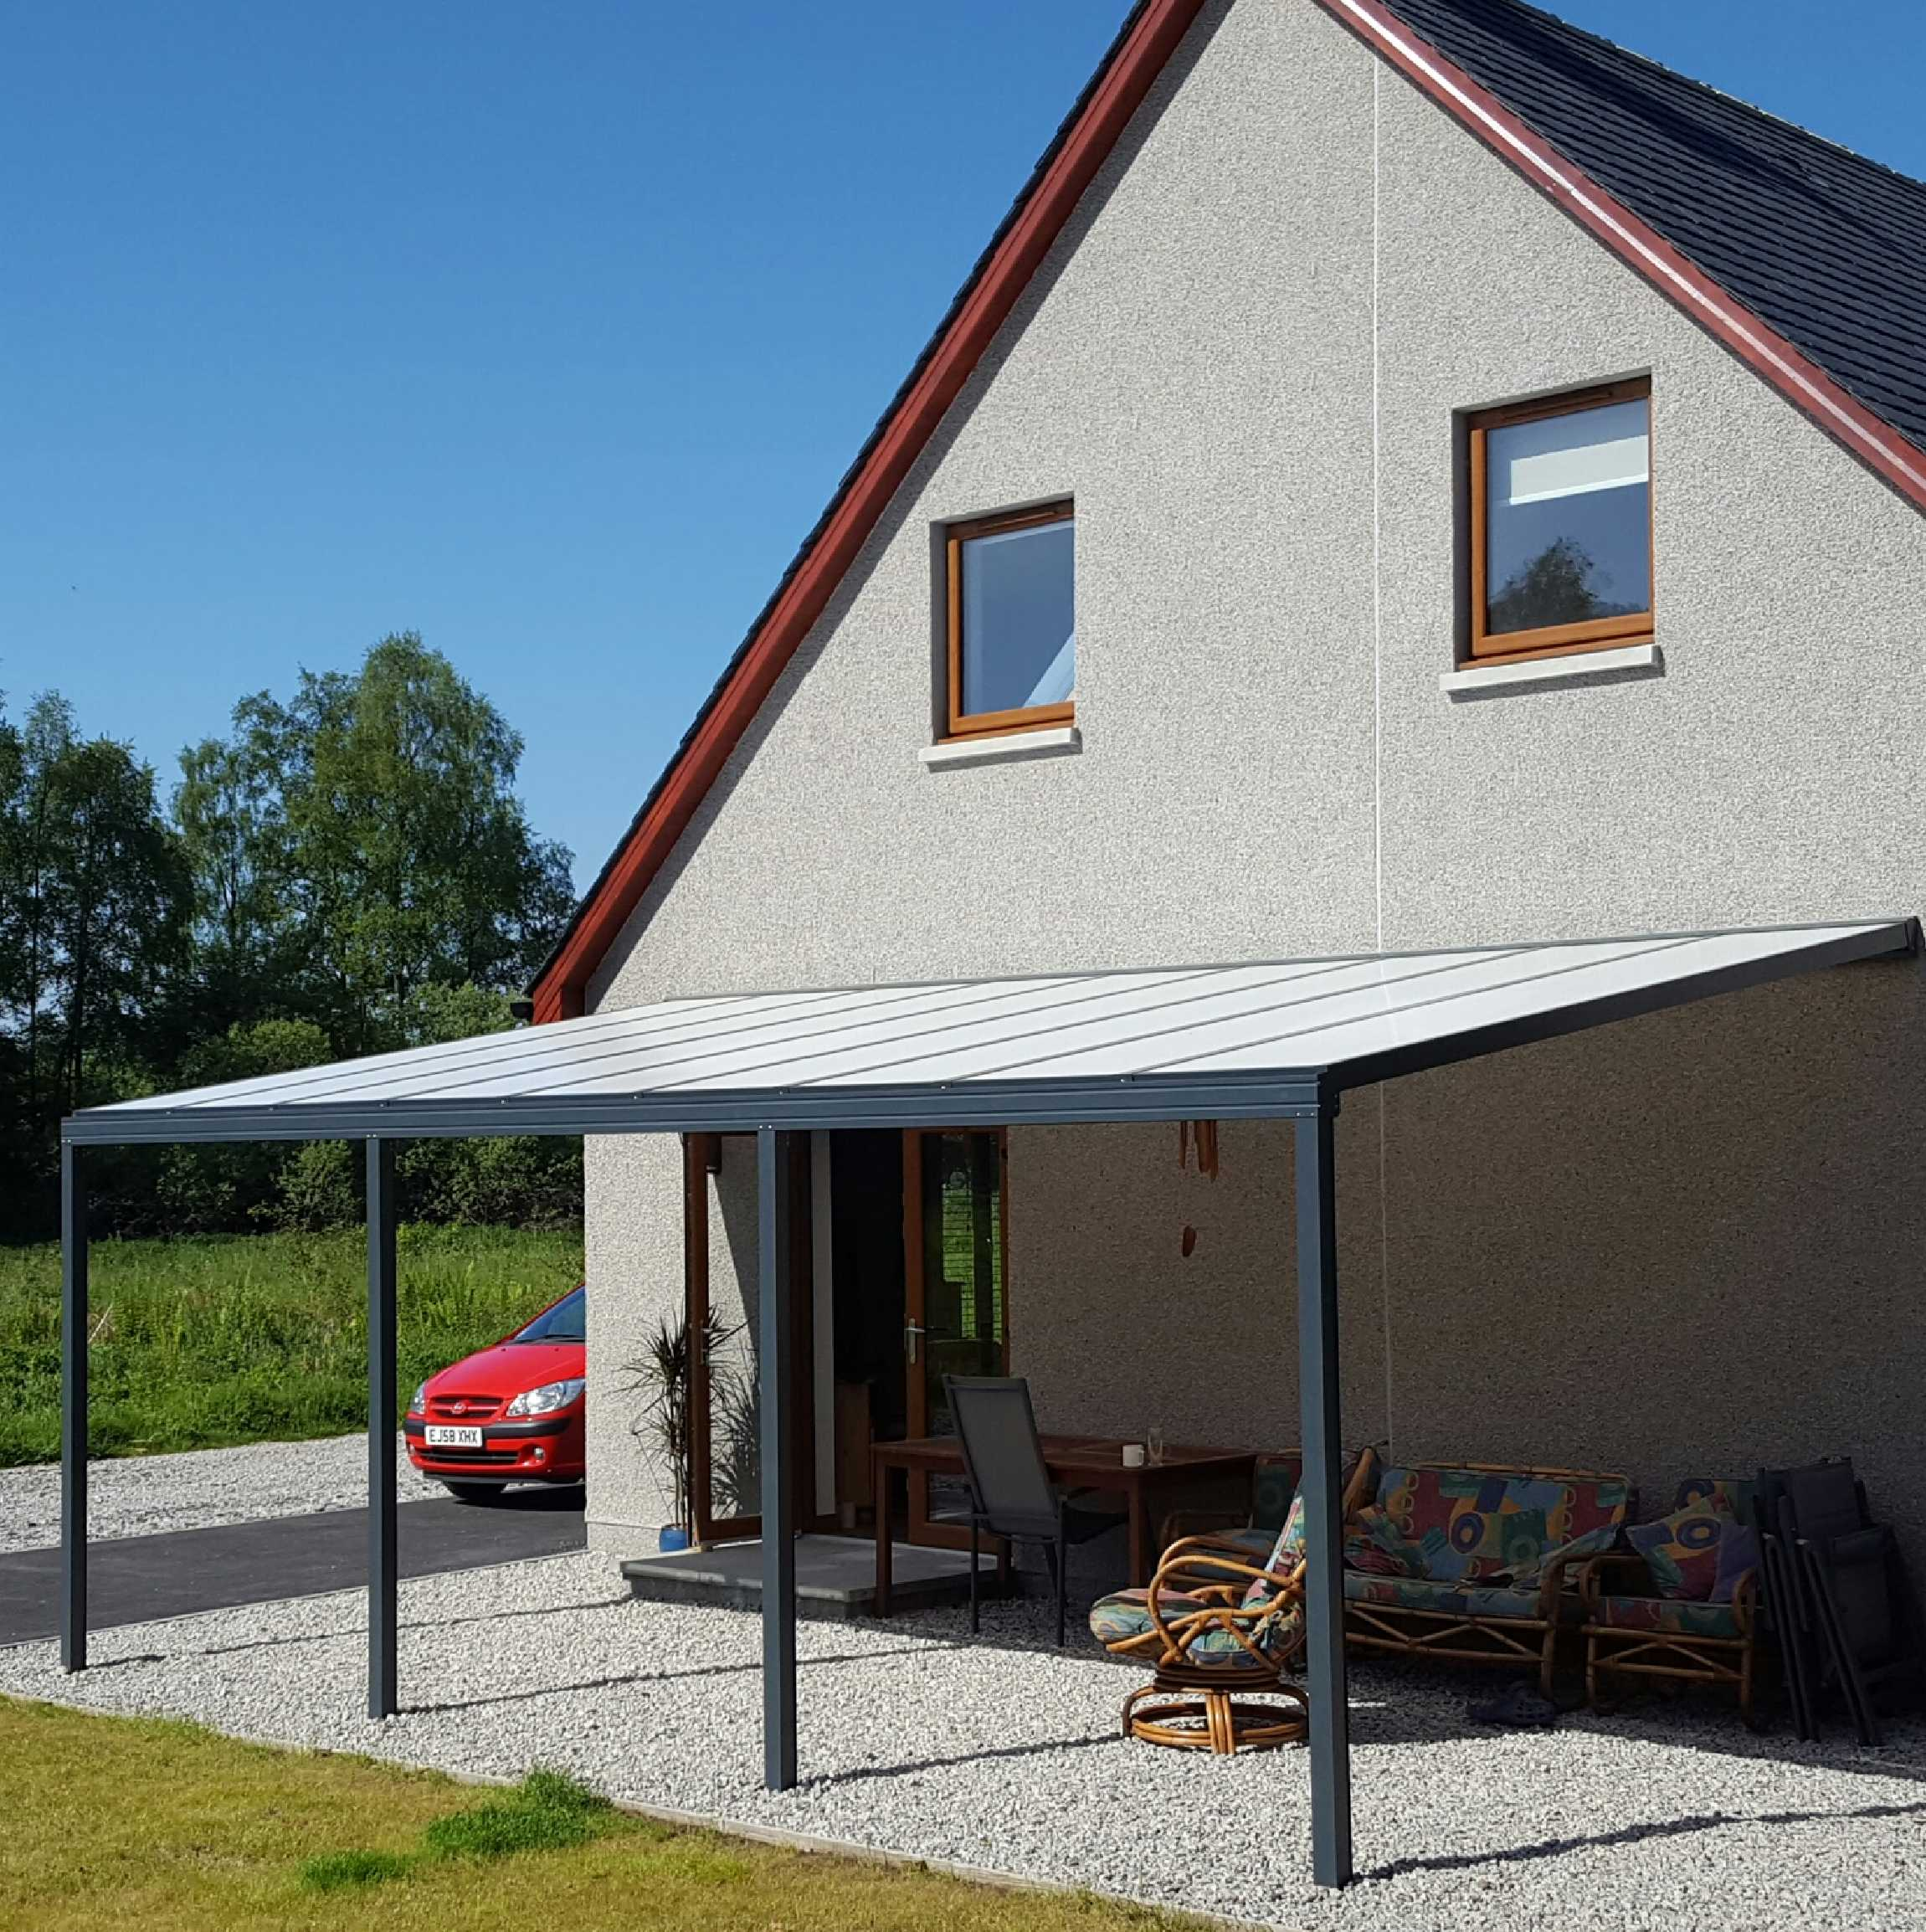 Great selection of Omega Smart Lean-To Canopy, Anthracite Grey, 16mm Polycarbonate Glazing - 4.2m (W) x 1.5m (P), (3) Supporting Posts